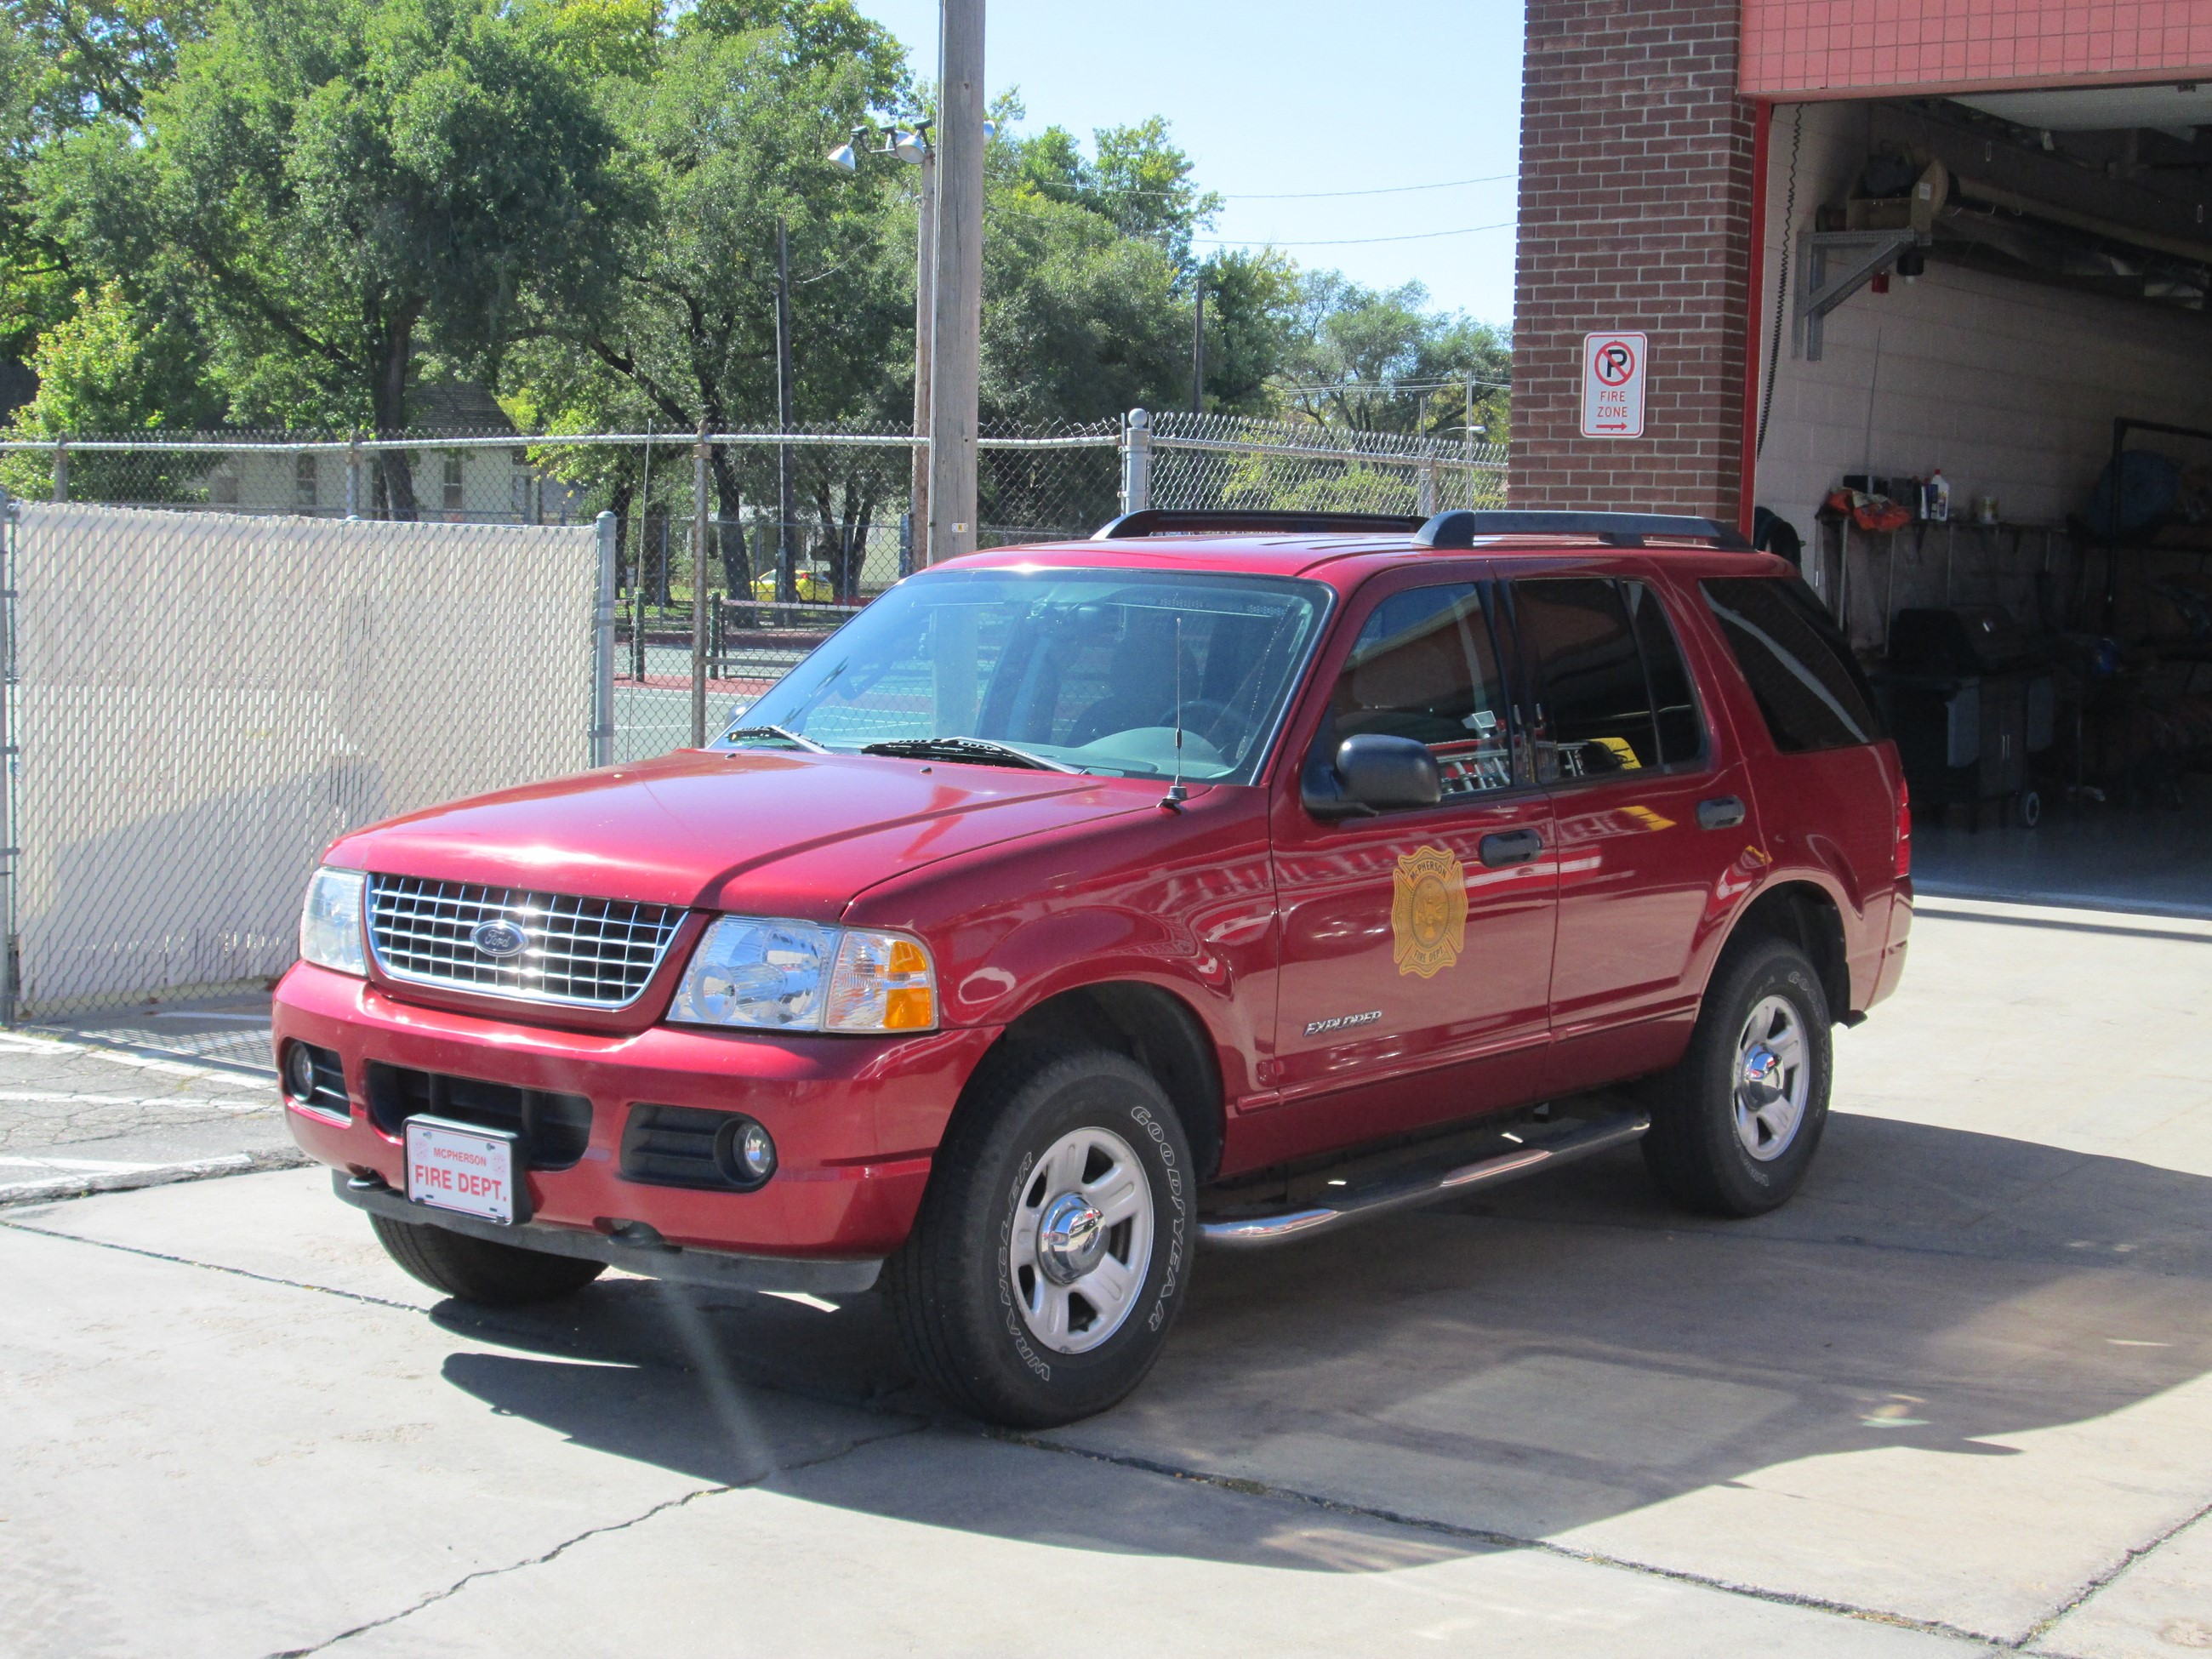 Red sports utility vehicle with Fire Department logo on the side.